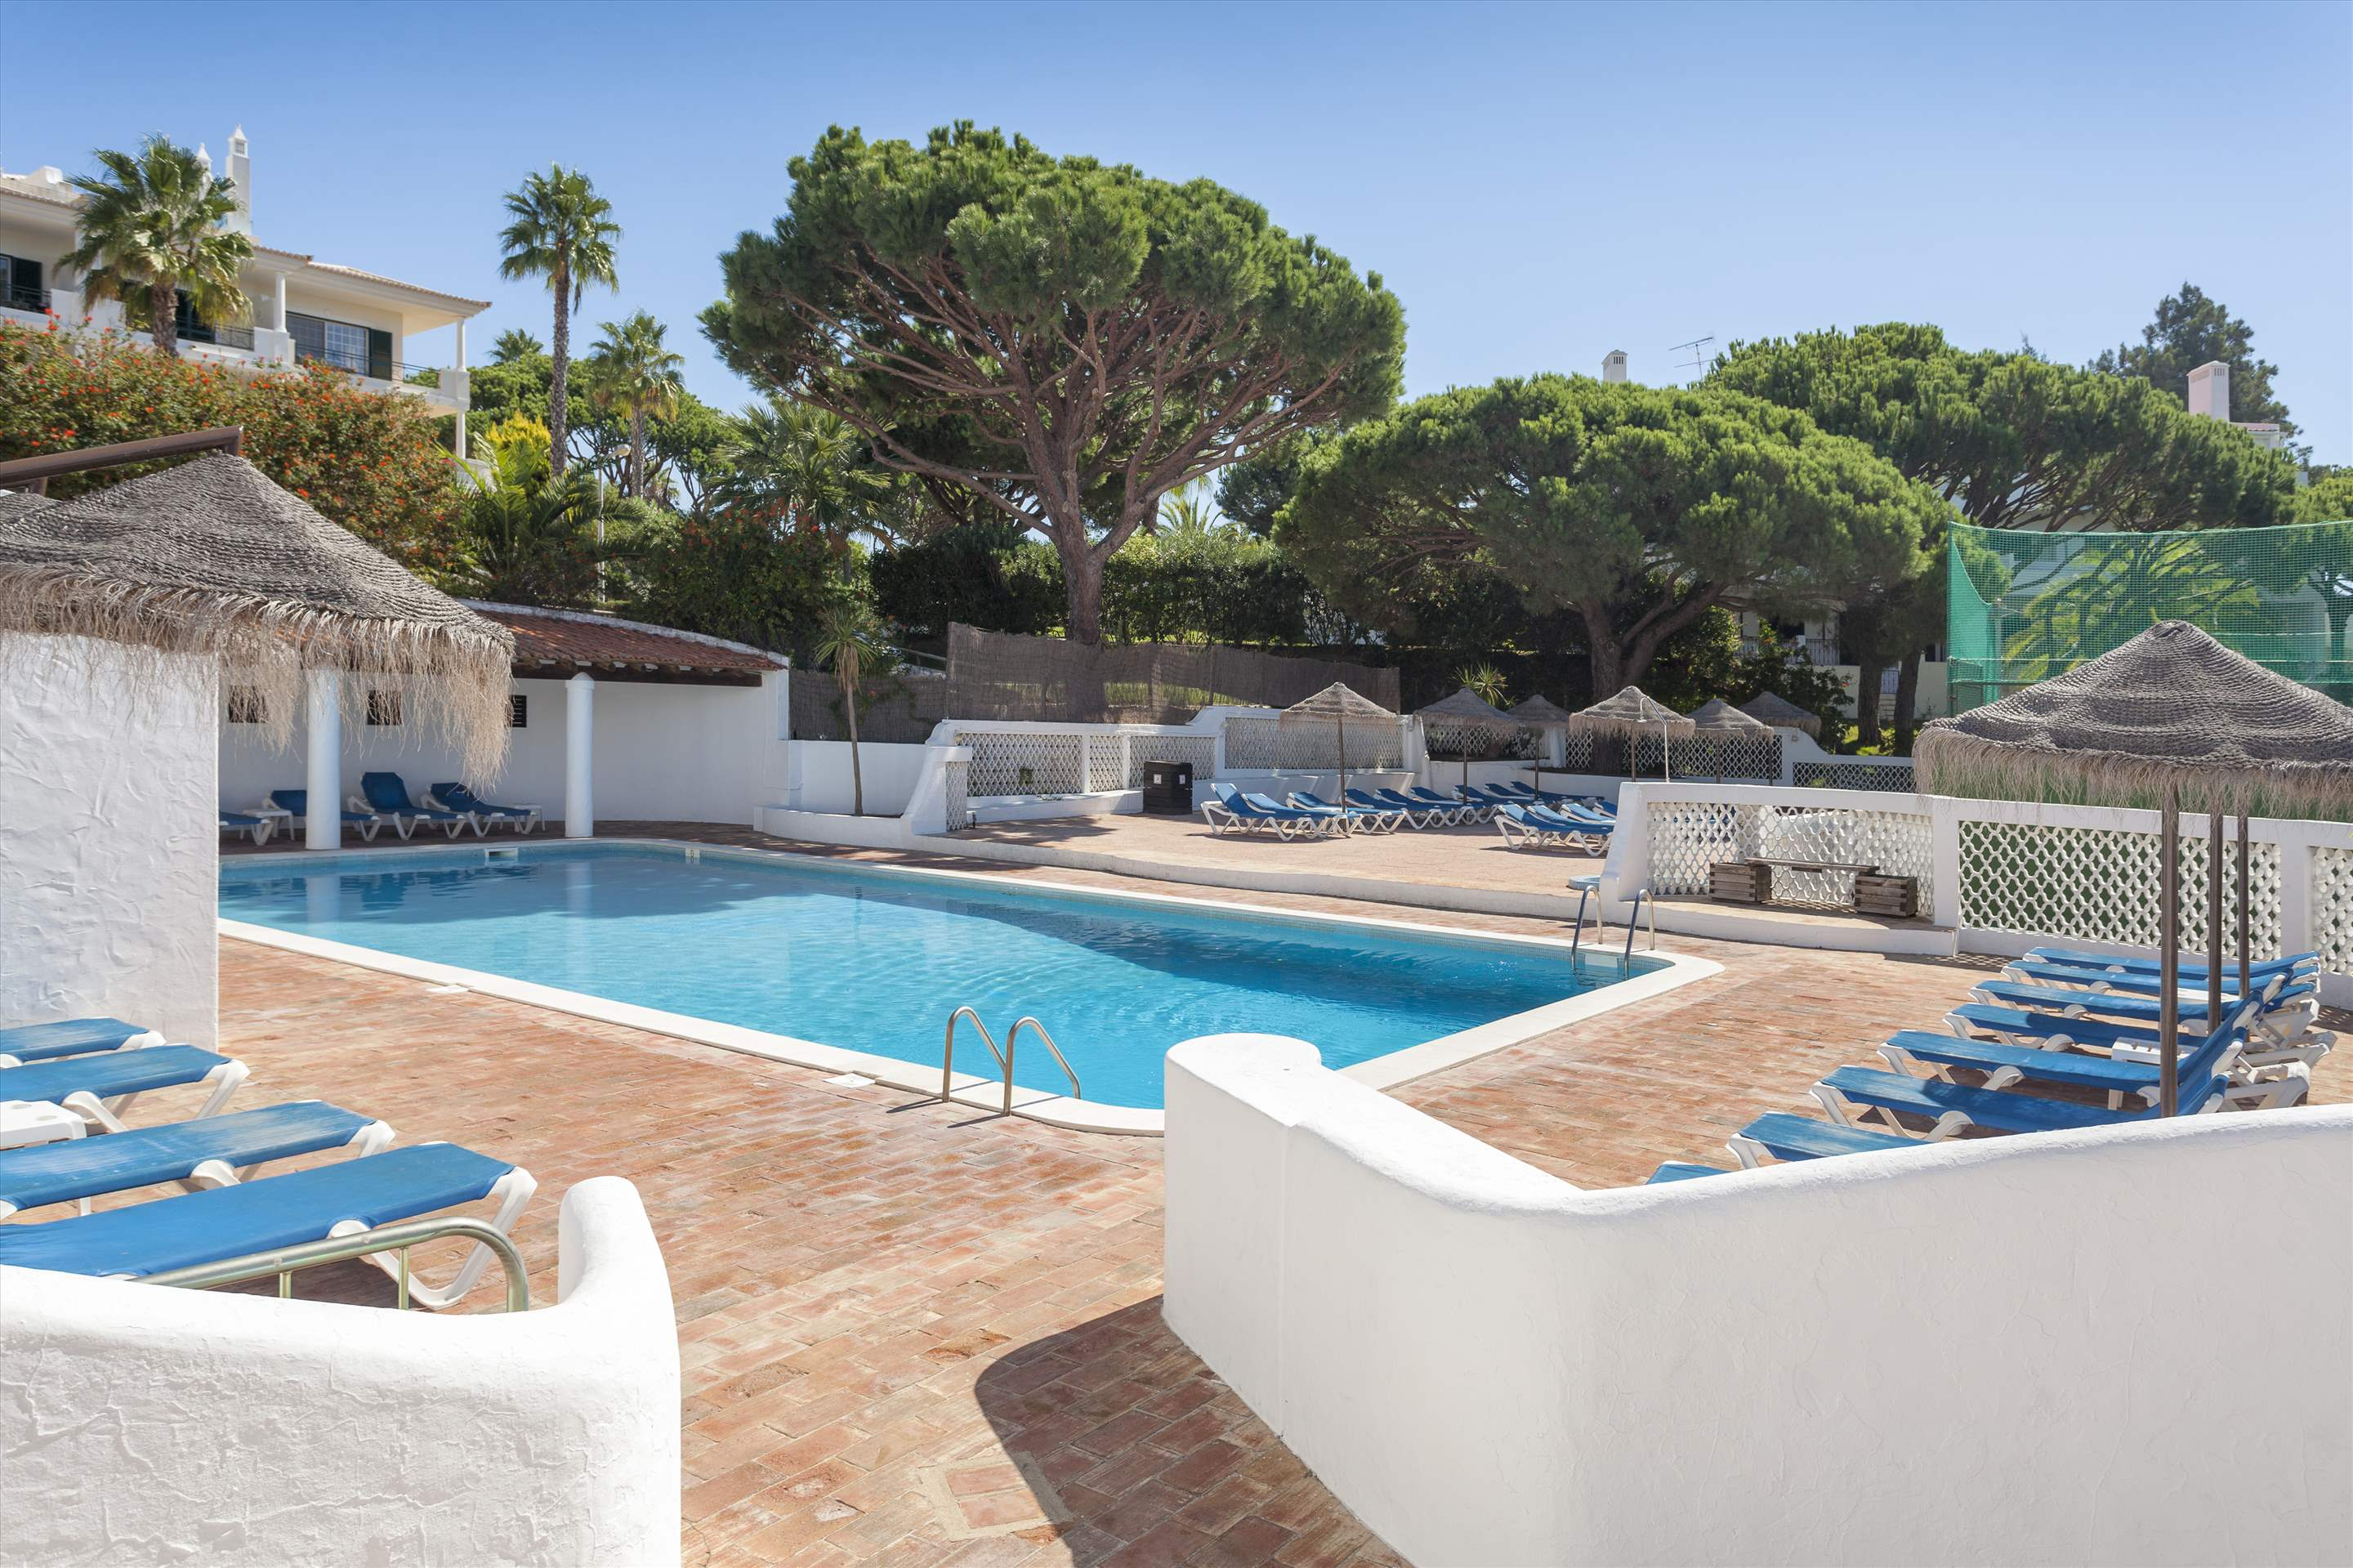 Apartment Jacinda, 2 bedroom apartment in Vale do Lobo, Algarve Photo #20